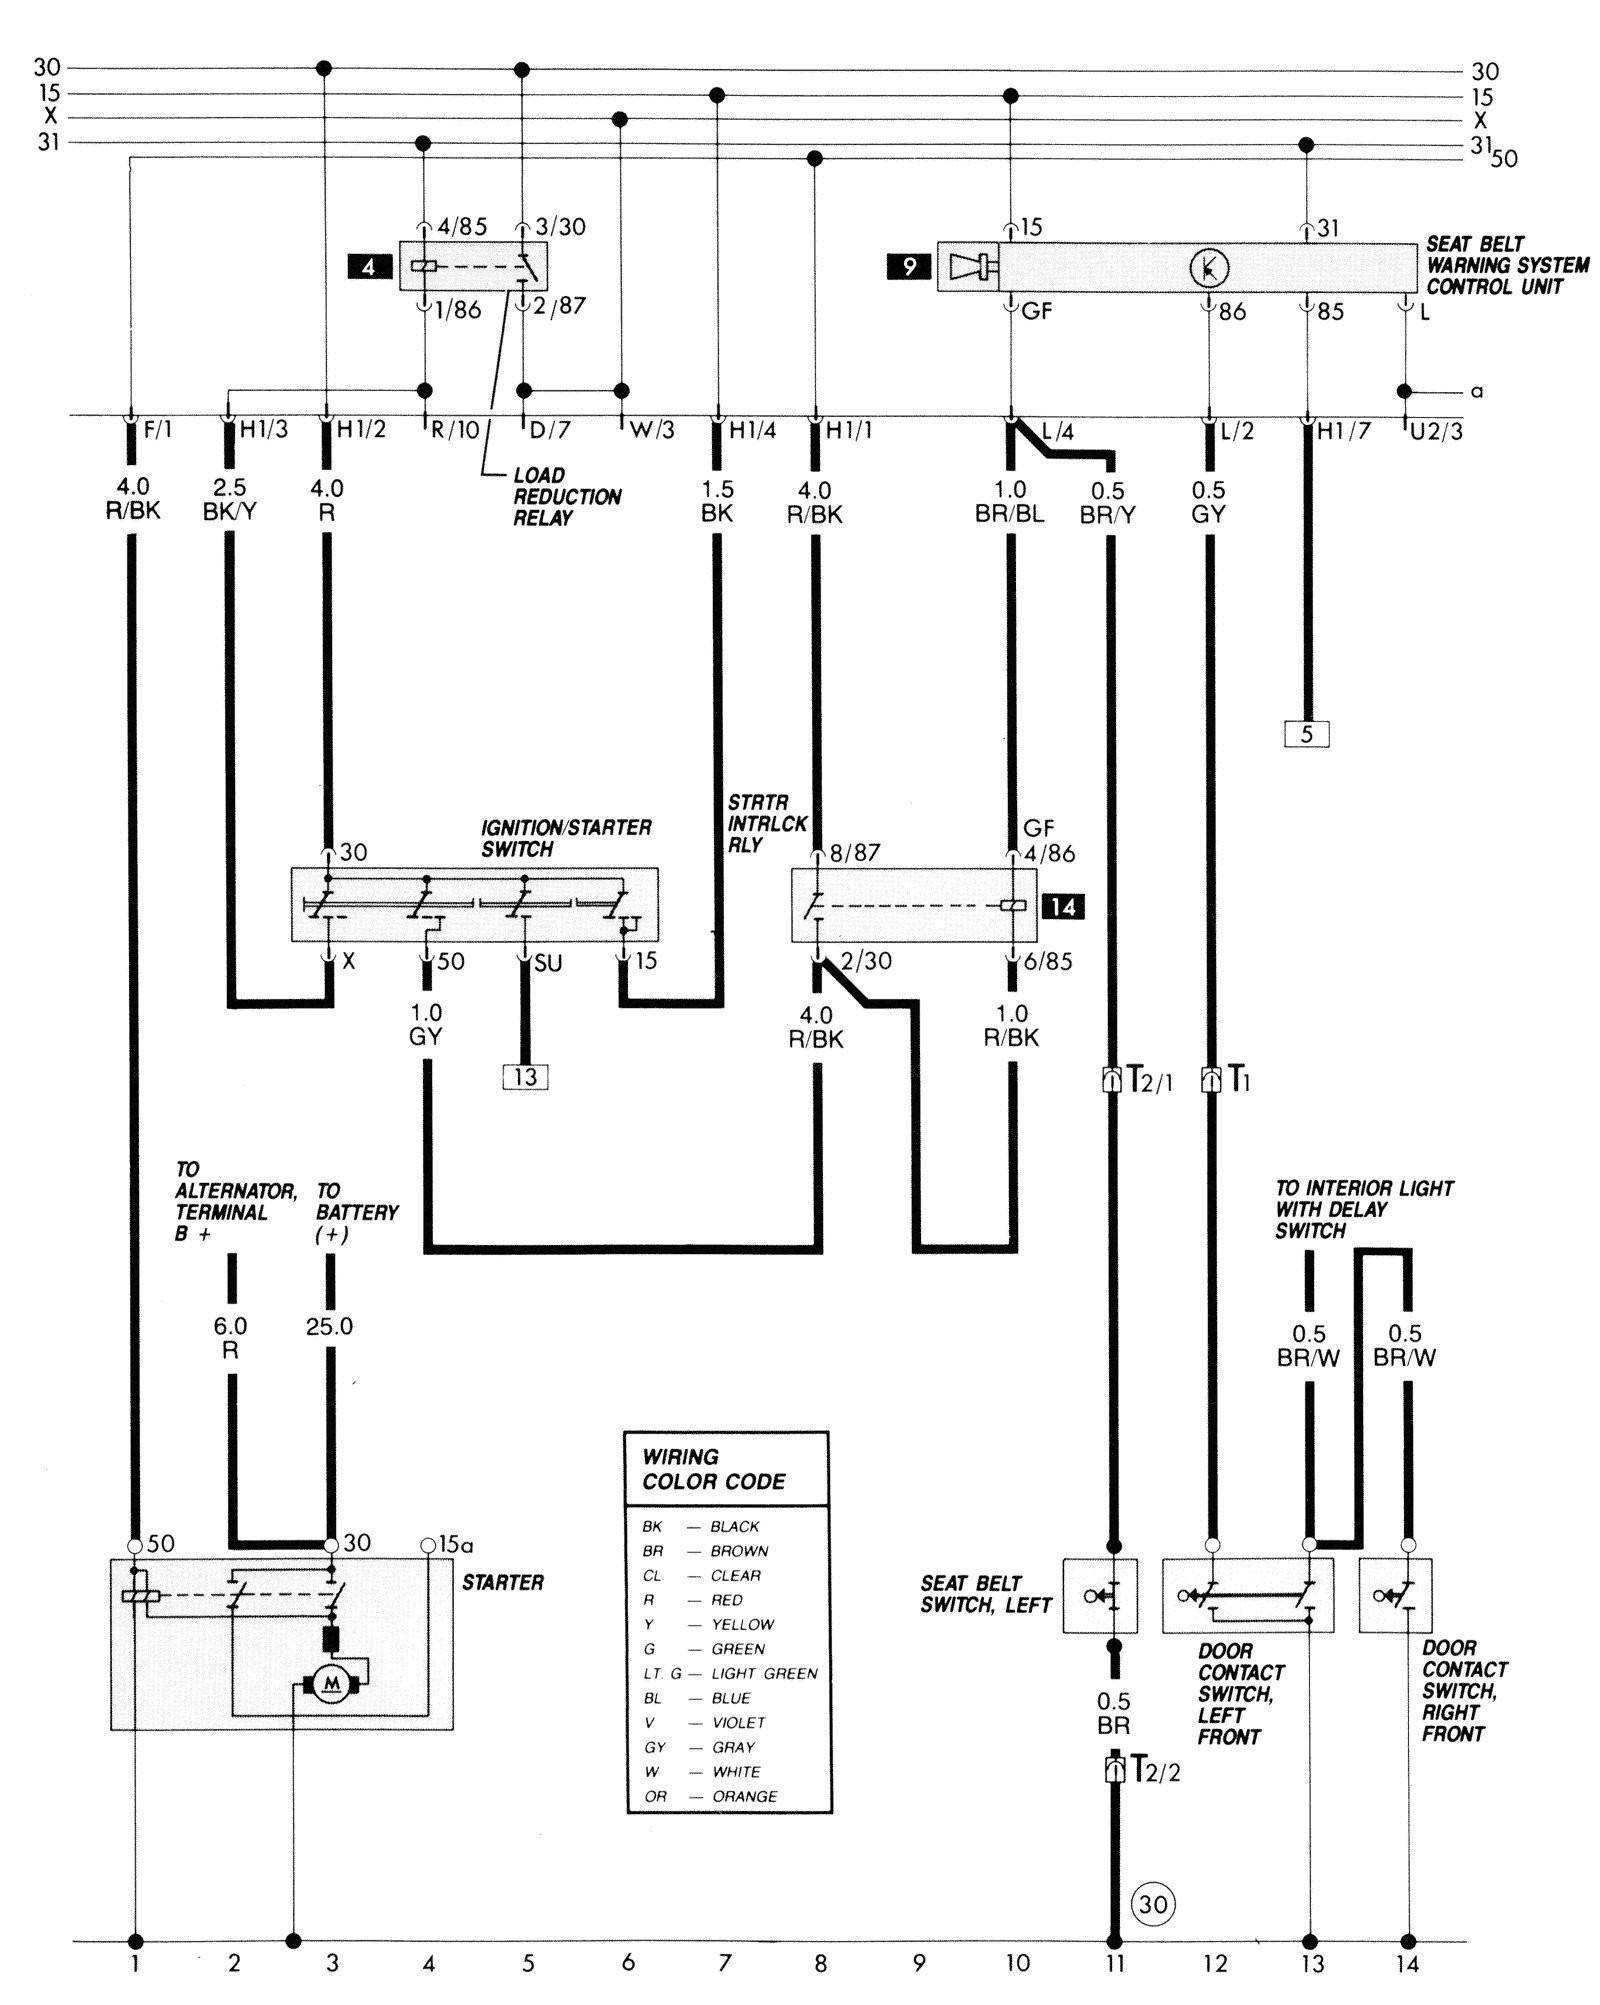 hight resolution of wiring diagram vw golf vr6 wiring diagram data today vr6 wiring diagram vr6 wiring diagram